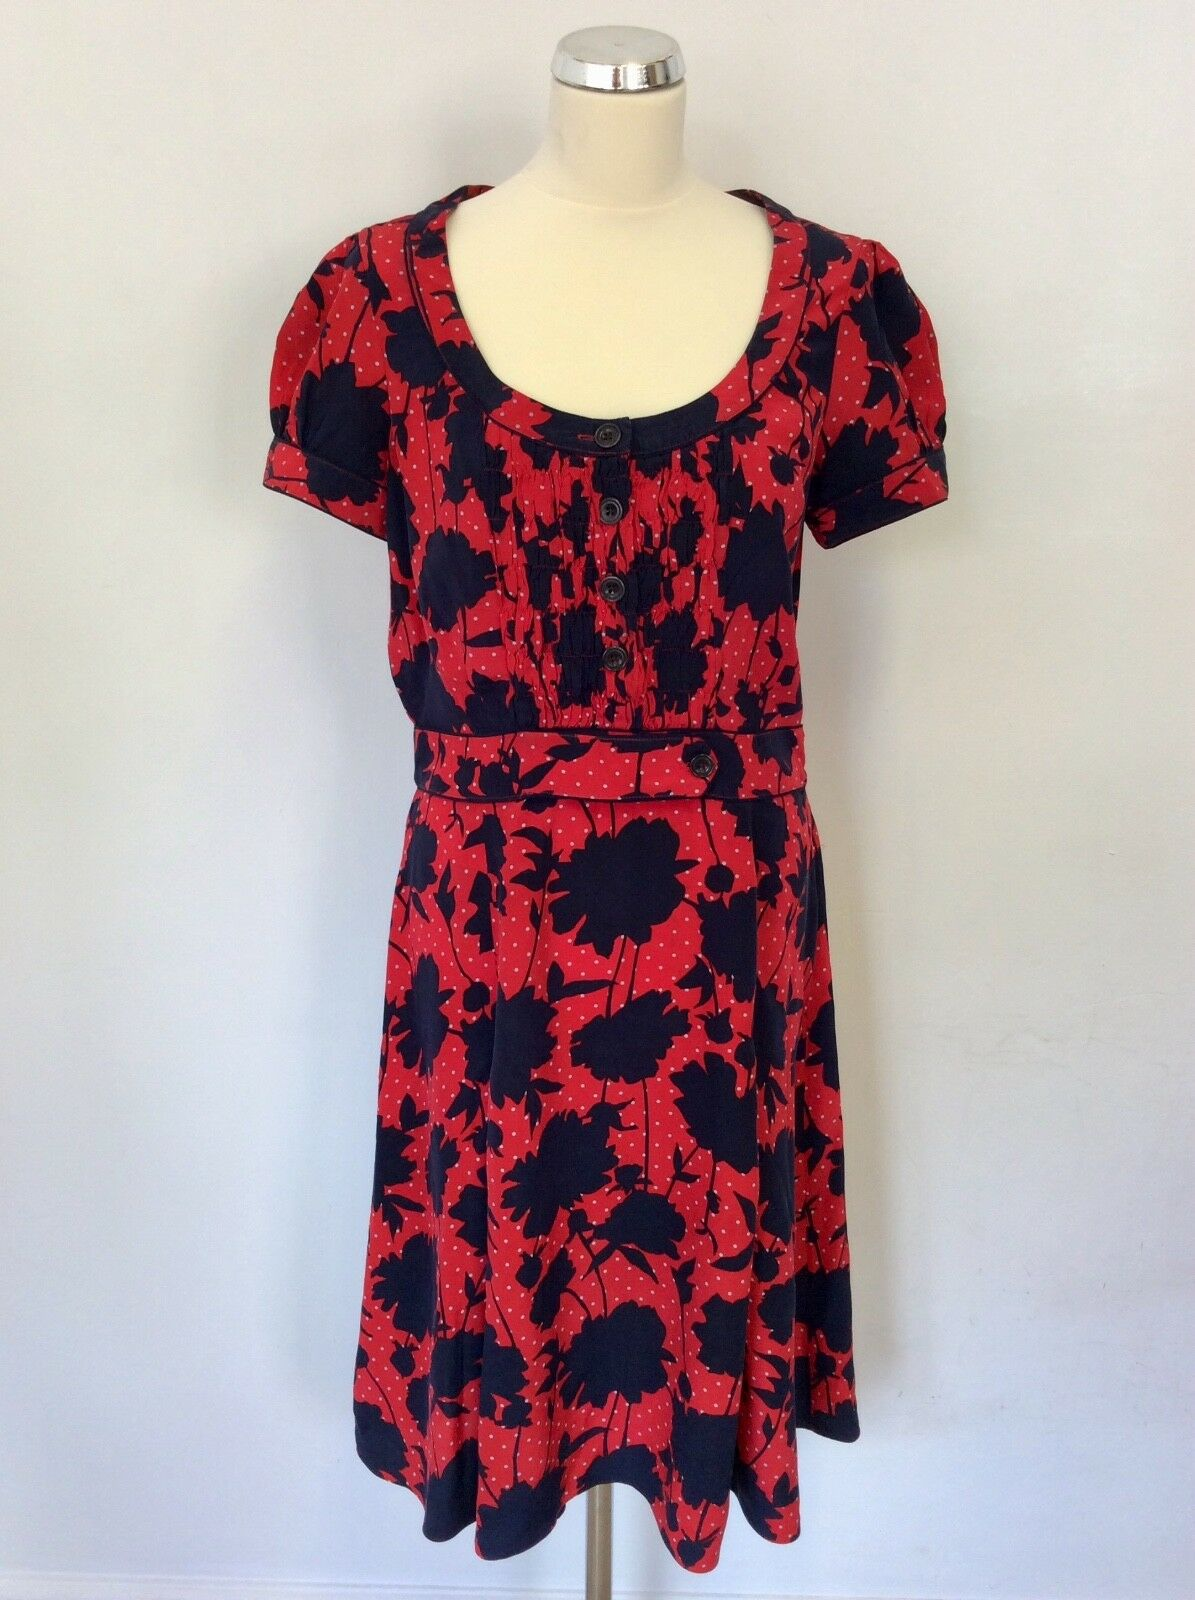 WHISTLES RED & NAVY SPOT & FLORAL PRINT SILK DRESS SIZE 8